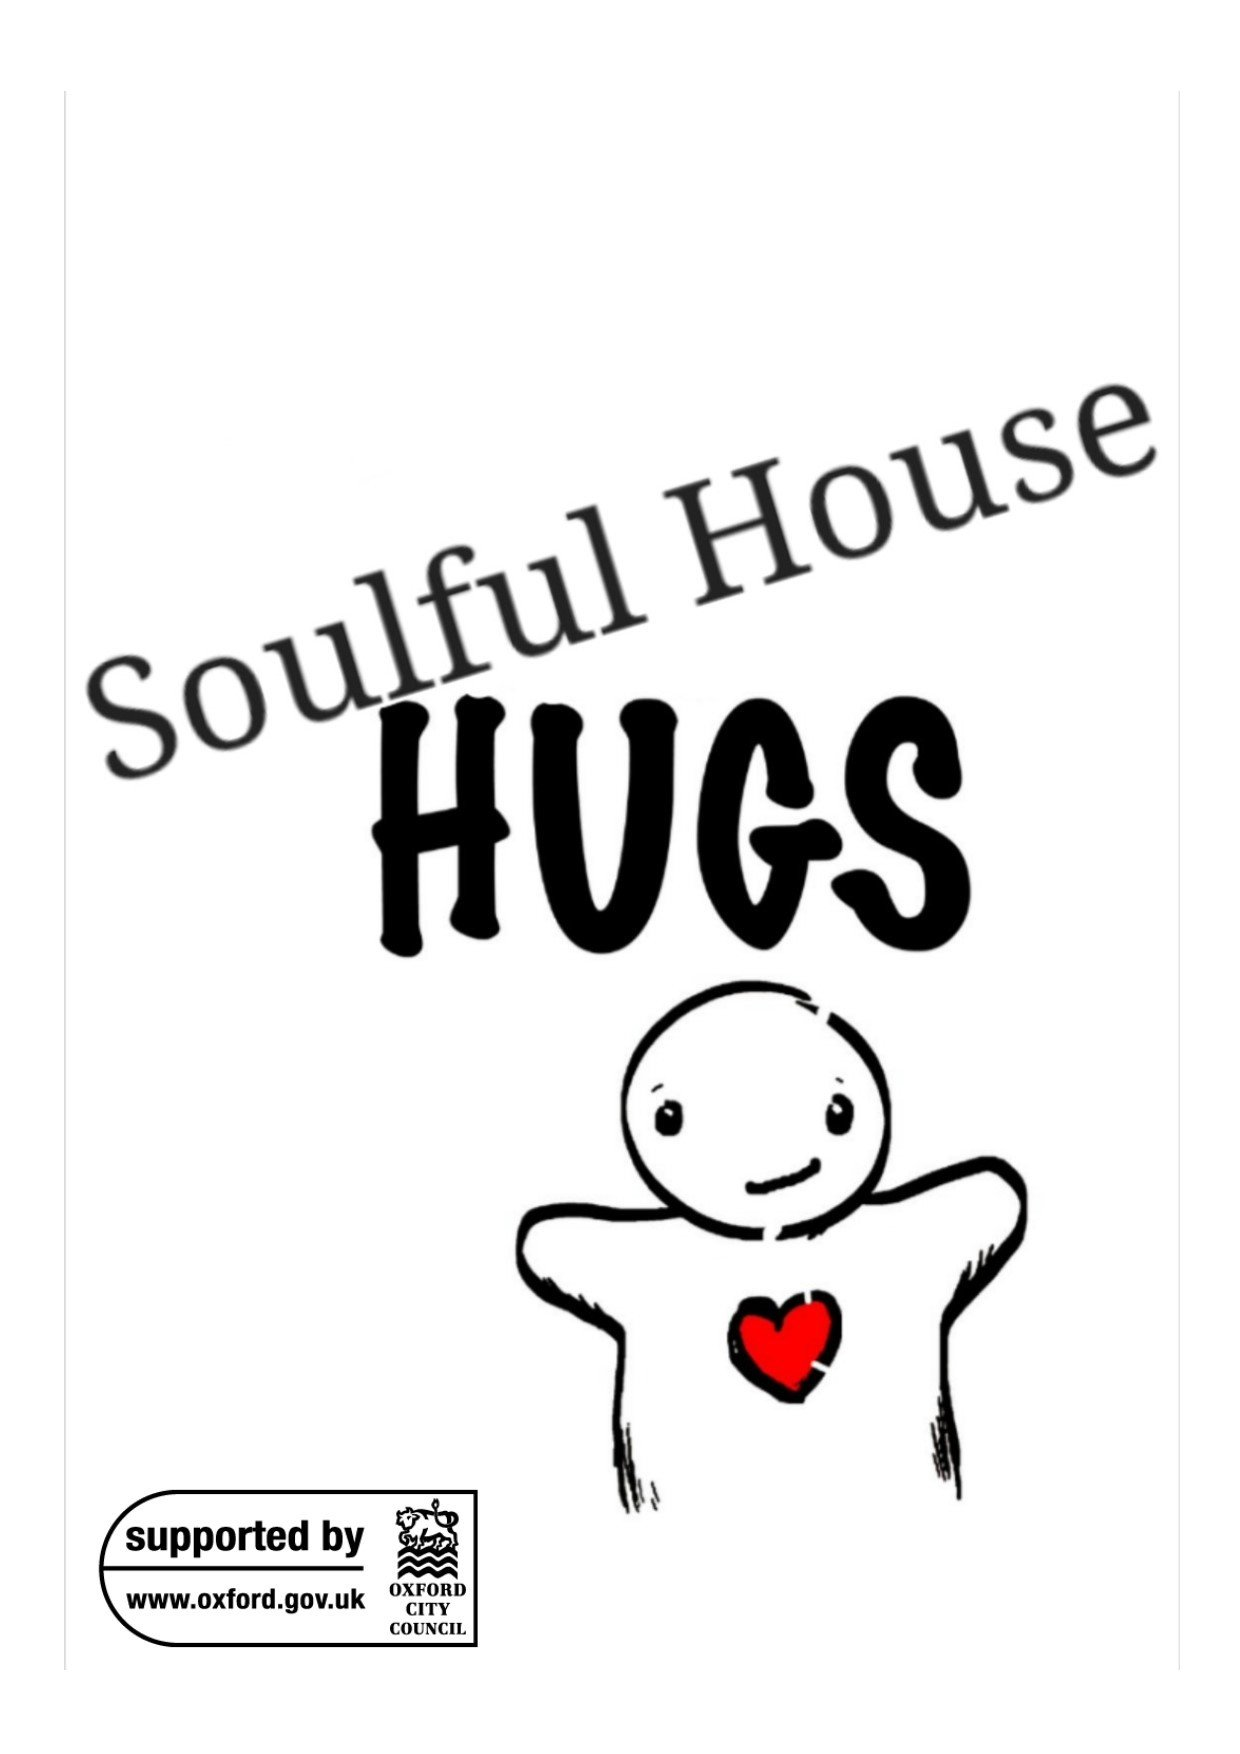 DJG AT SOULFUL HOUSE HUGS